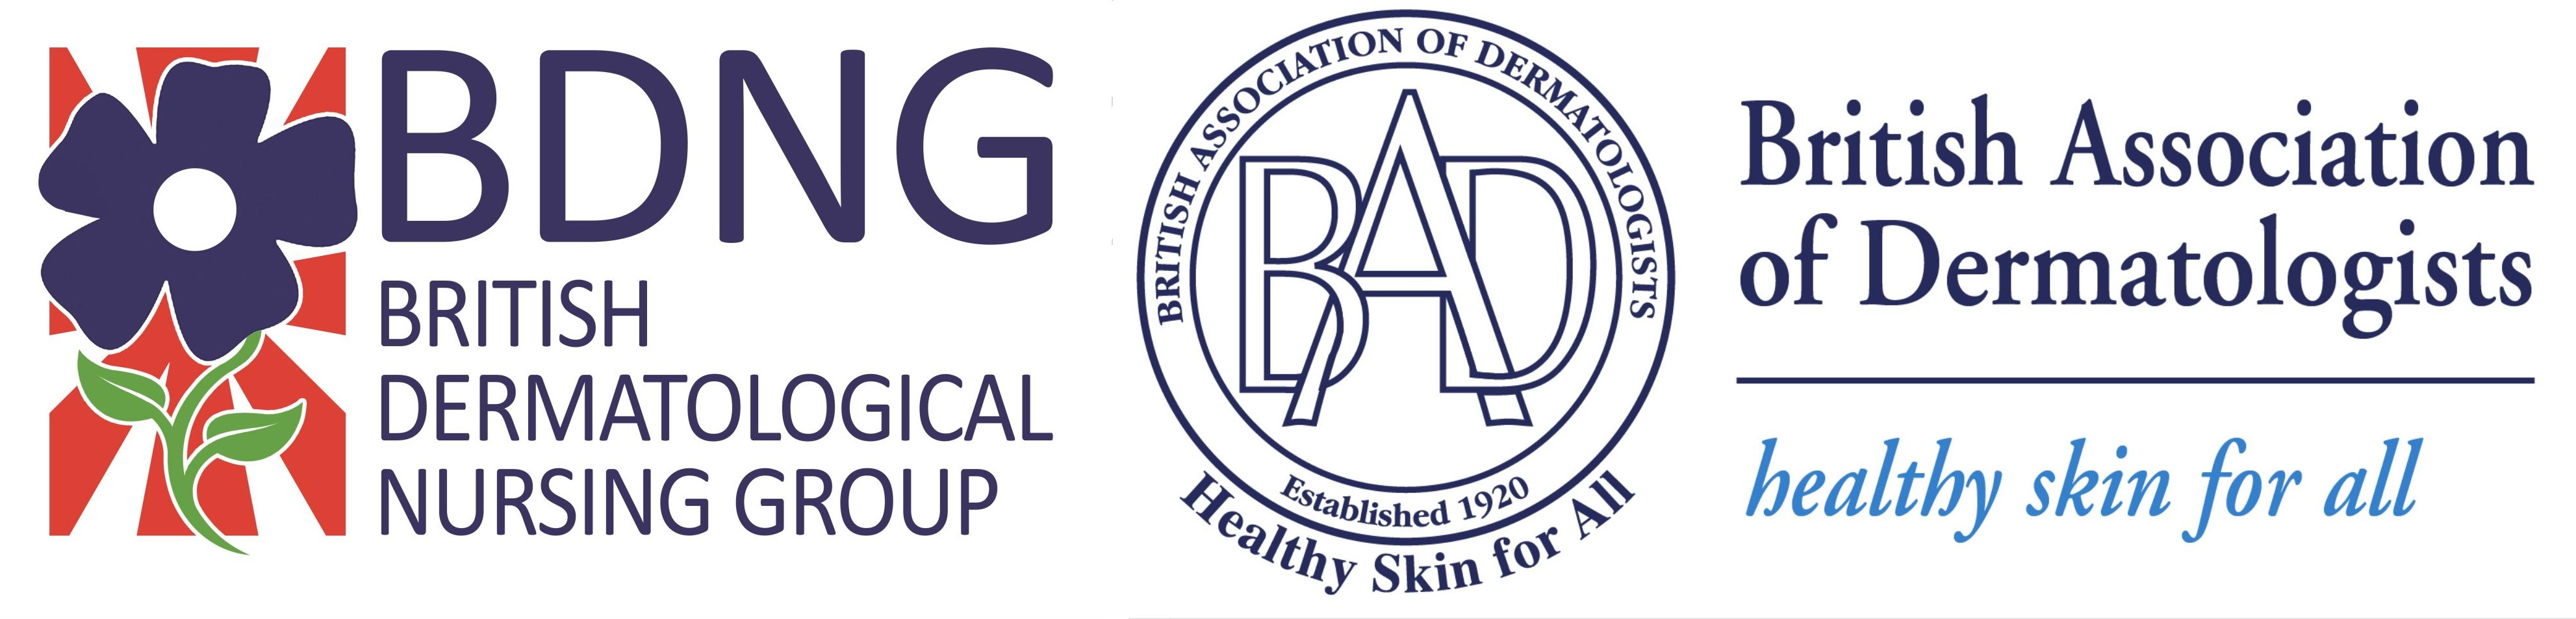 """<div style=""""text-align: center;"""">This survey has been designed by the British Dermatological Nursing Group (BDNG) as part of the British Association of Dermatologist (BAD) EducationBoard Nursing Workstream.</div>"""